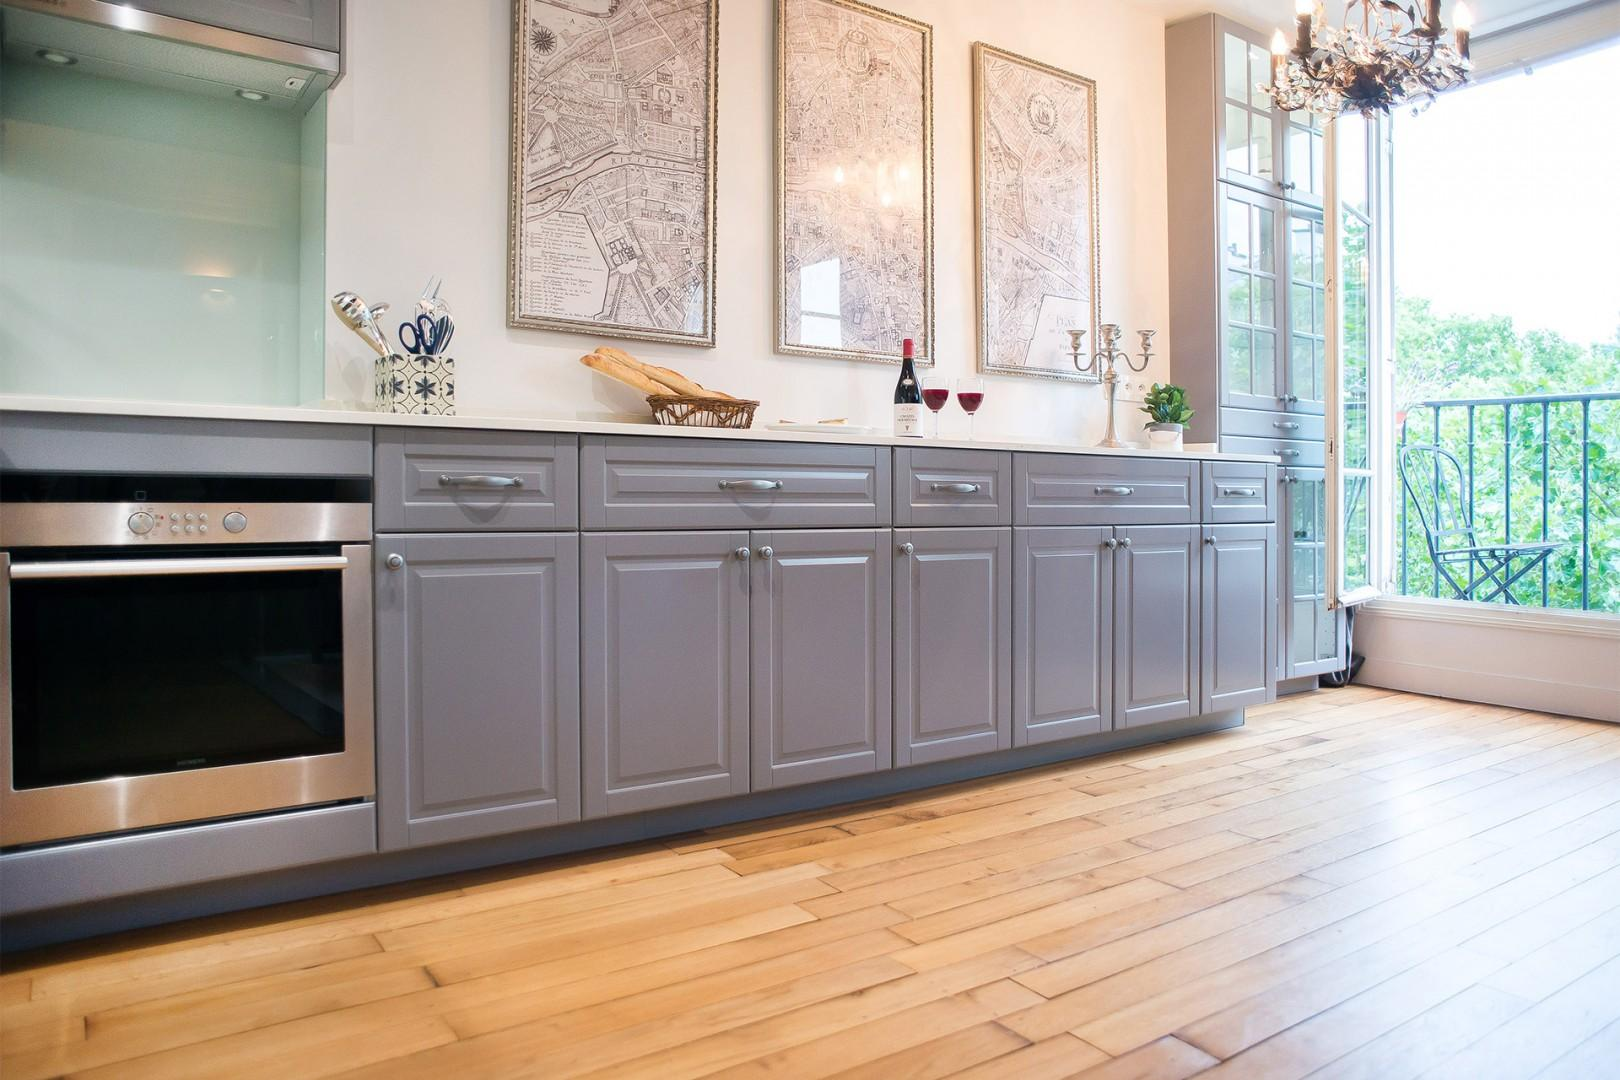 The cleverly designed open-plan kitchen offers lots of counter space and storage.